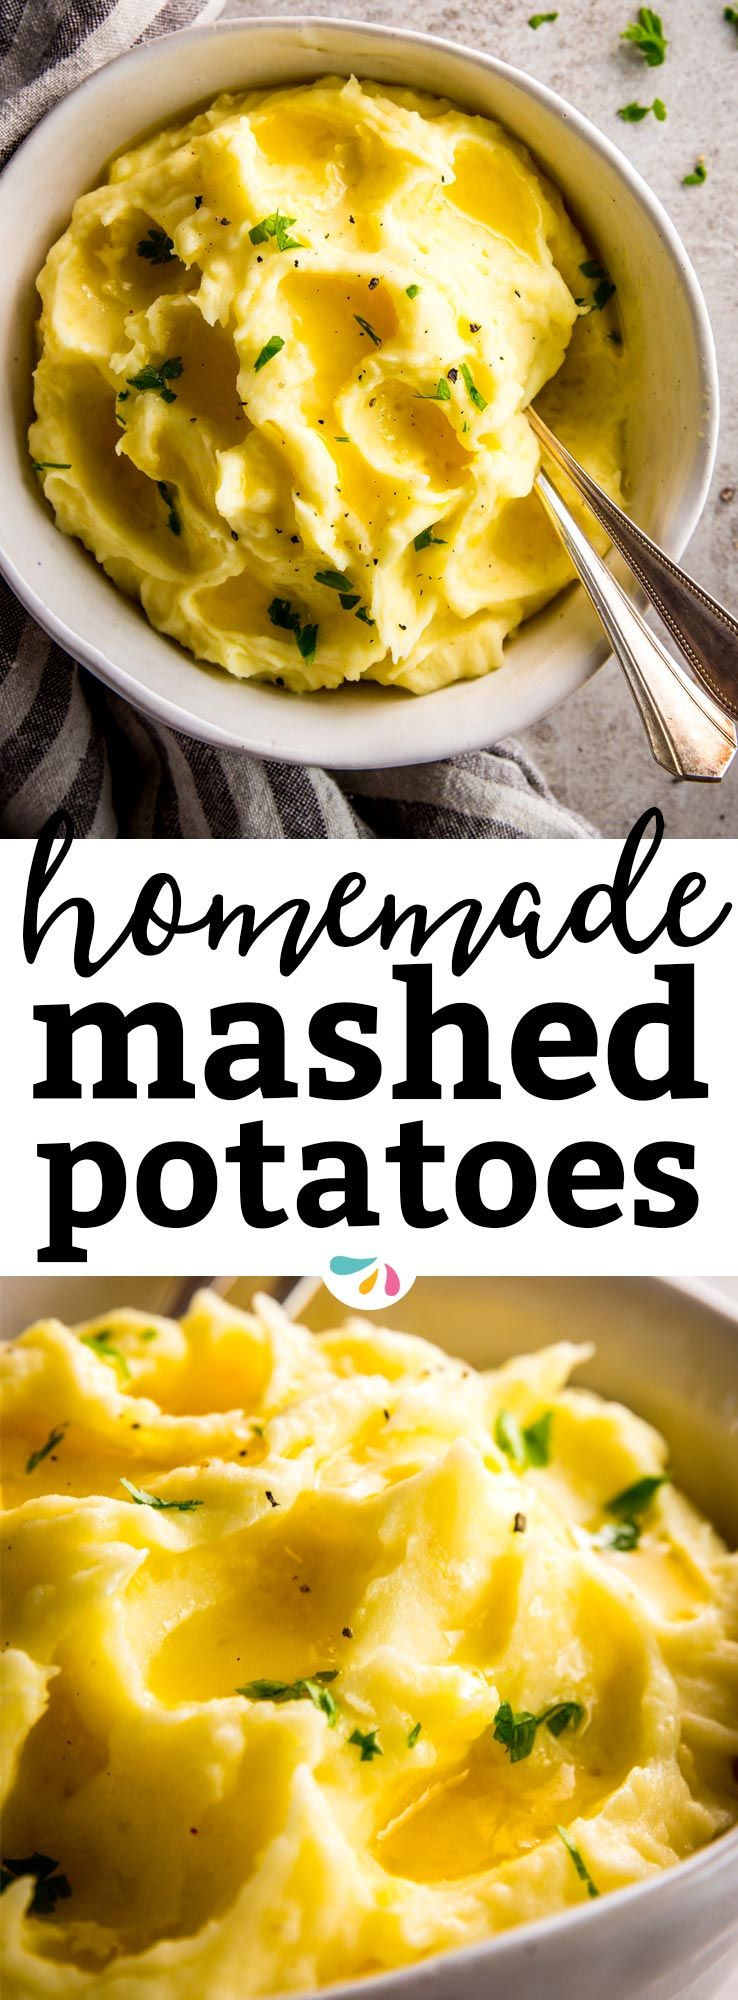 You want to serve up a steaming bowl of creamy, fluffy, buttery mashed potatoes... And I have all the tips and secrets for you to make it happen. No matter if it's for Thanksgiving, for Christmas or just because mash is so darn good... This homemade recipe is easy, creamy, quick and simply perfect as a side dish for any special dinner. | #comfortfood #recipes #thanksgiving #thanksgivingrecipes #sidedish #vegetarian #christmas #holidays #holidayfood